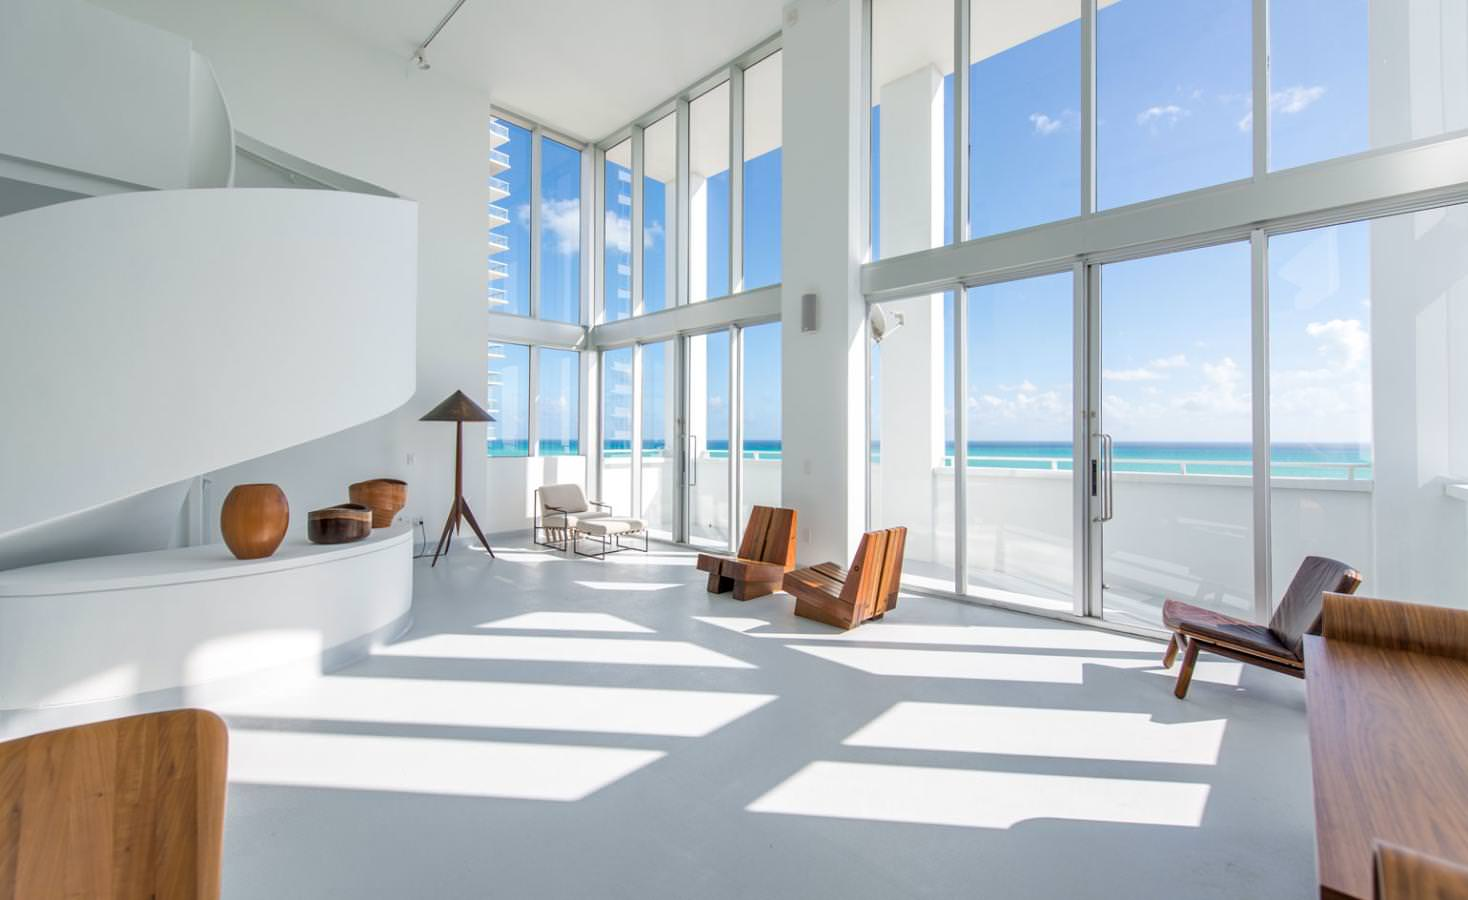 espasso brings brazilian design to miami's shore club hotel in a